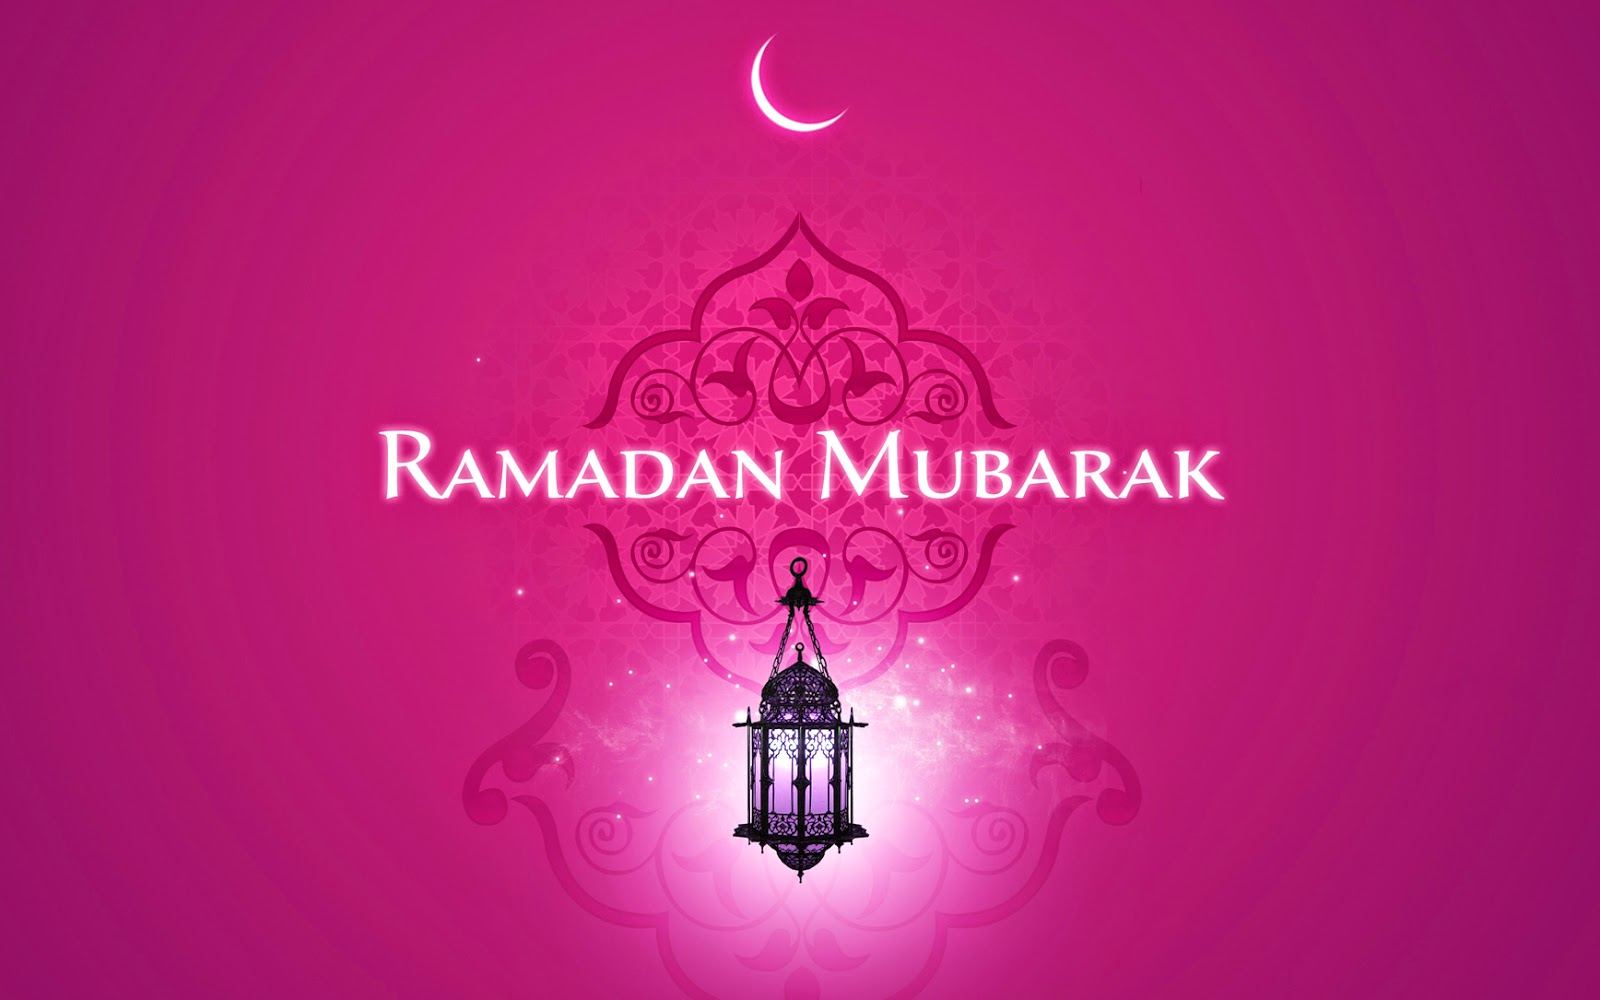 Ramadan 2018 Quotes, Images, Messages, Wishes, Greetings, SMS ... for Happy Ramadan Wallpaper  29jwn